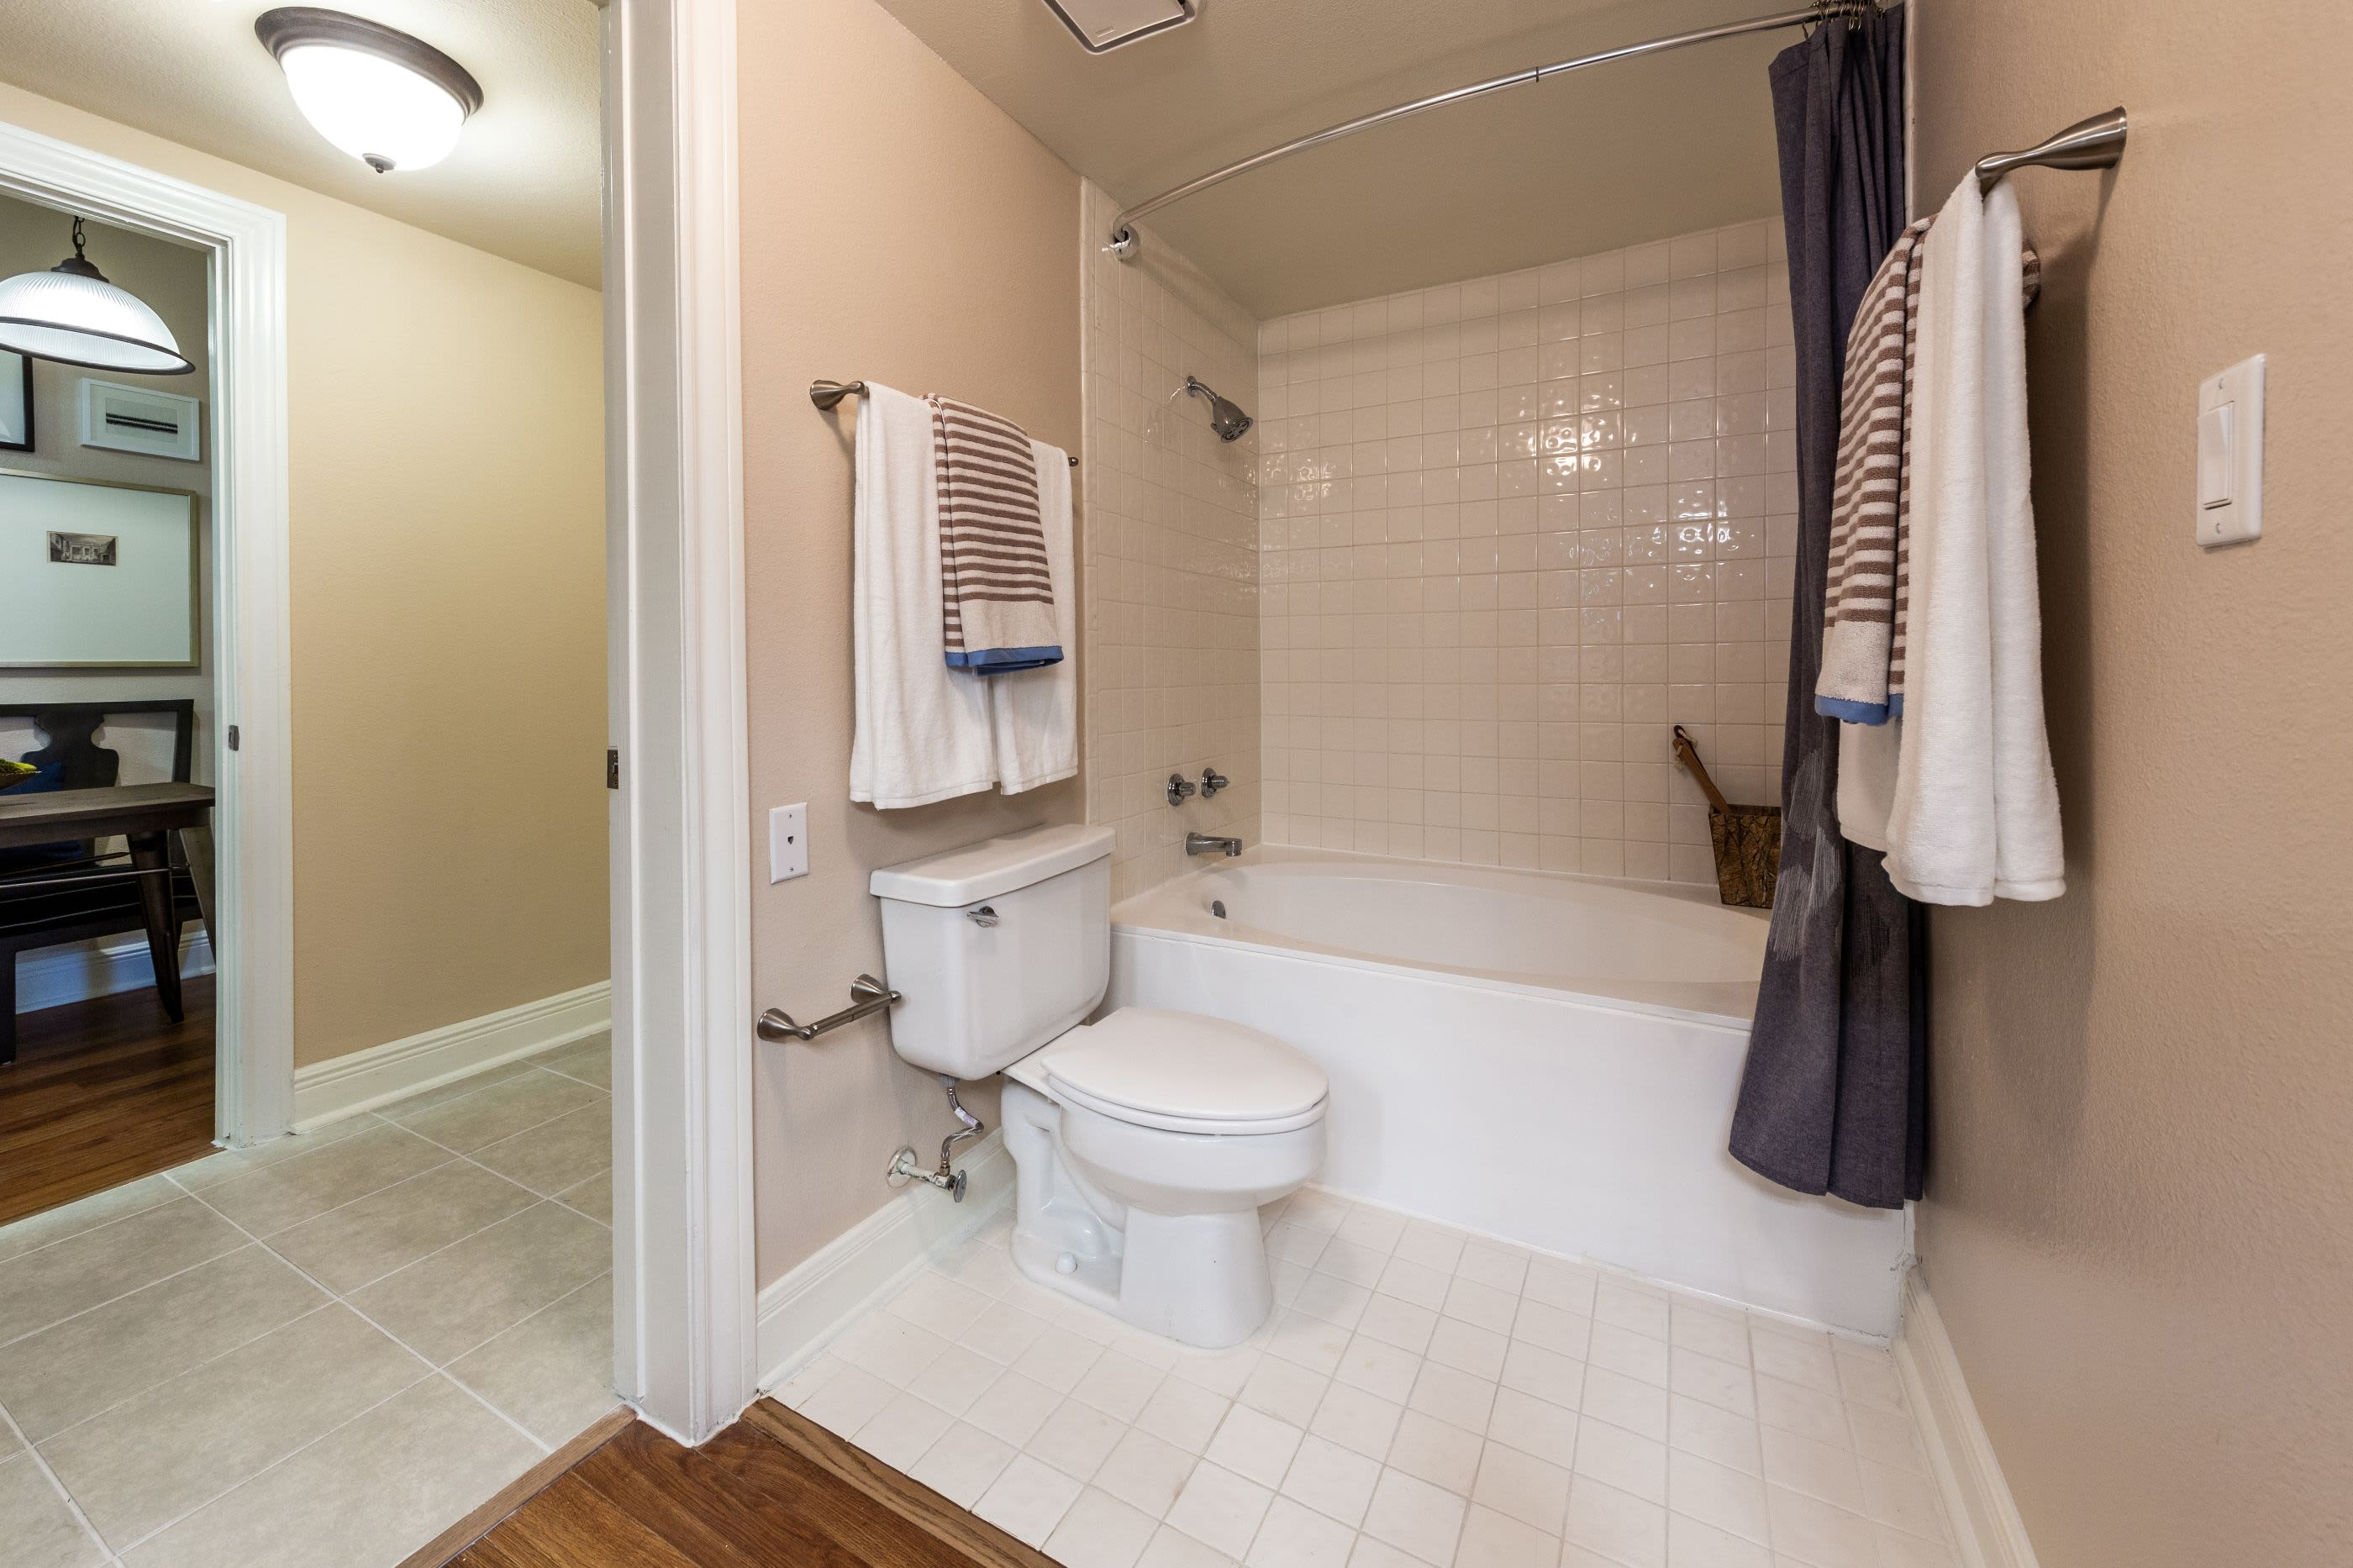 Bathroom with a tub and a shower at Marquis on Pin Oak in Houston, Texas